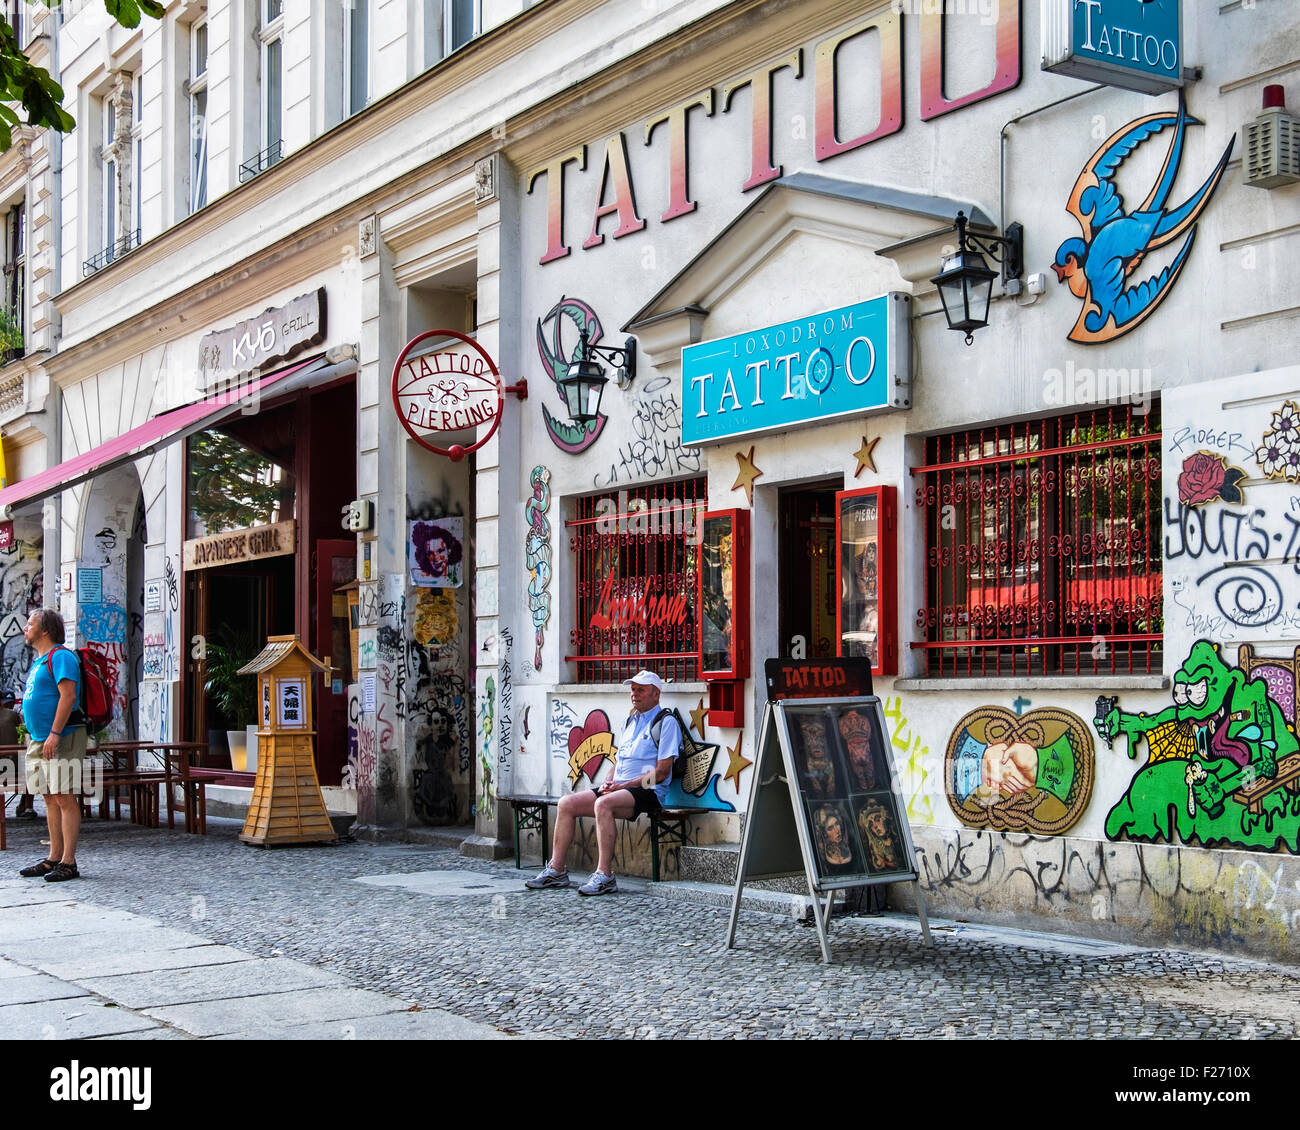 Loxodrom Tattoo & Piercing Parlour, shop exterior with colourful paintwork Kastanienallee, Berlin - Stock Image